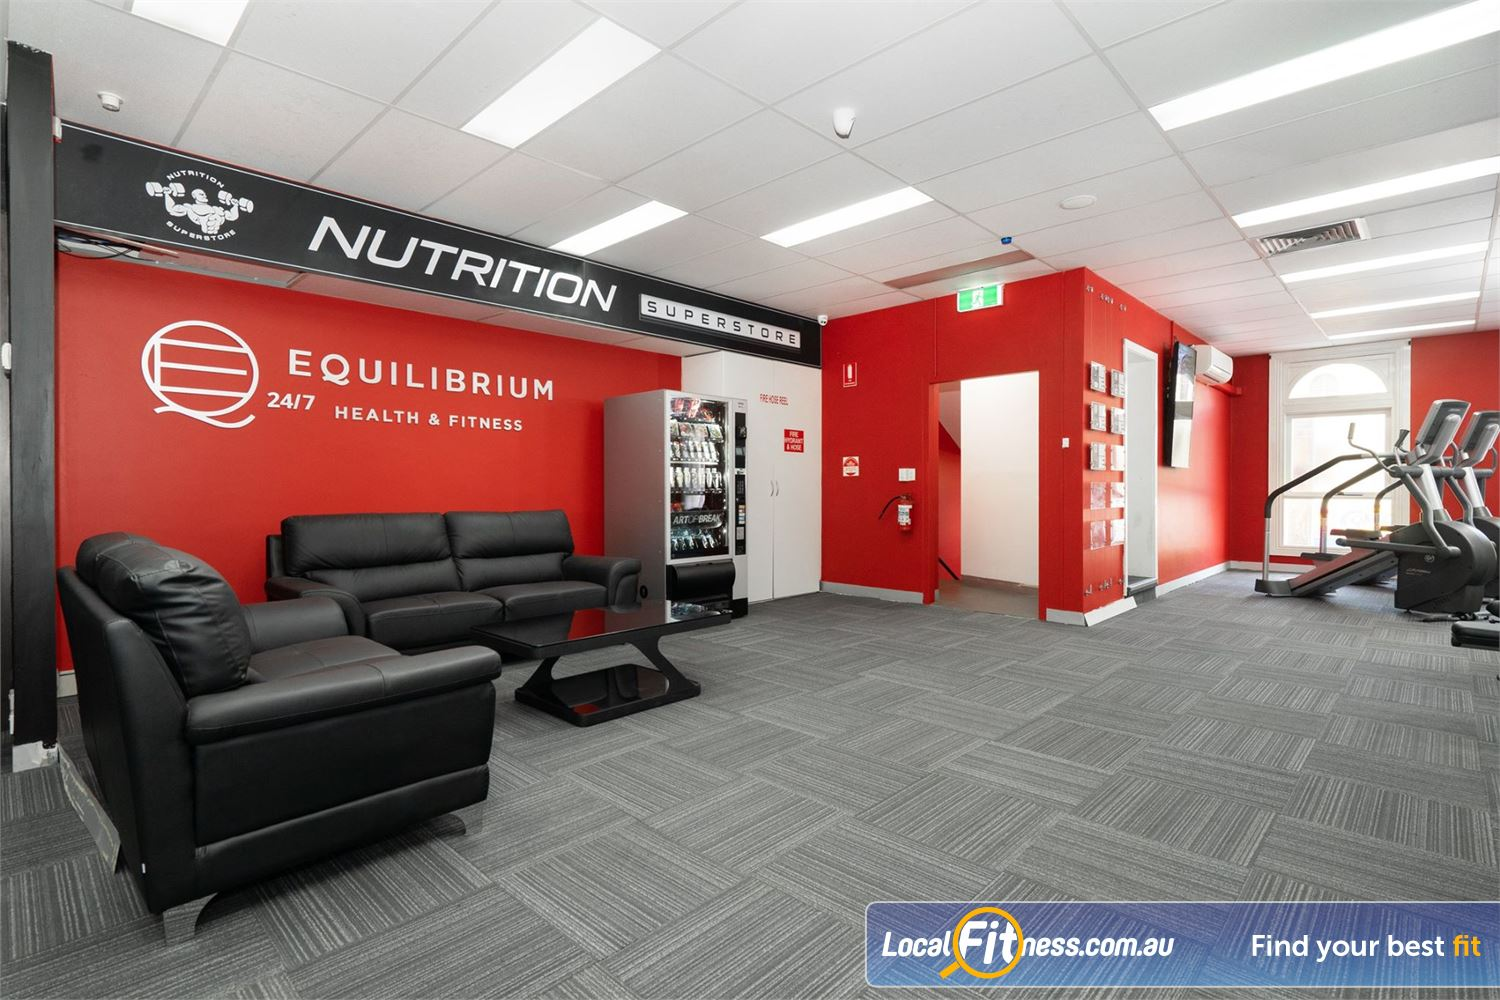 Equilibrium Health & Fitness 24/7 Near Parkville Relax and meet our community in our members lounge area.